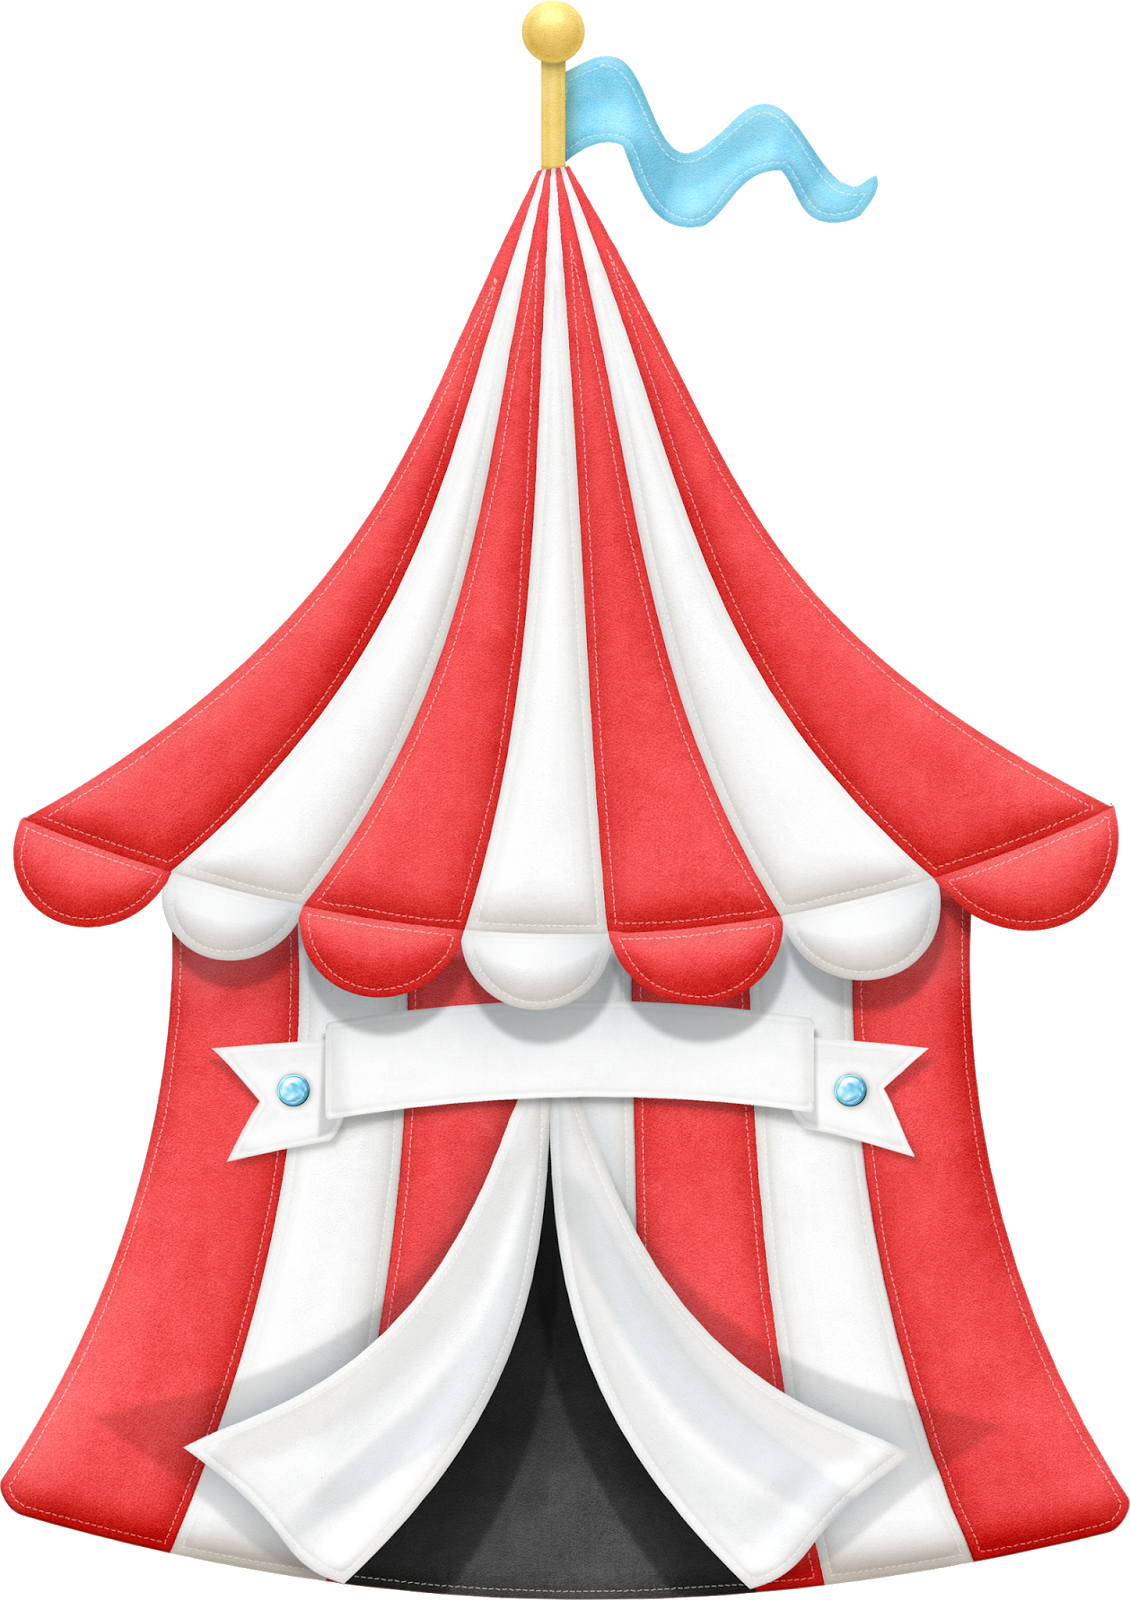 Circus: Free Printable Images.